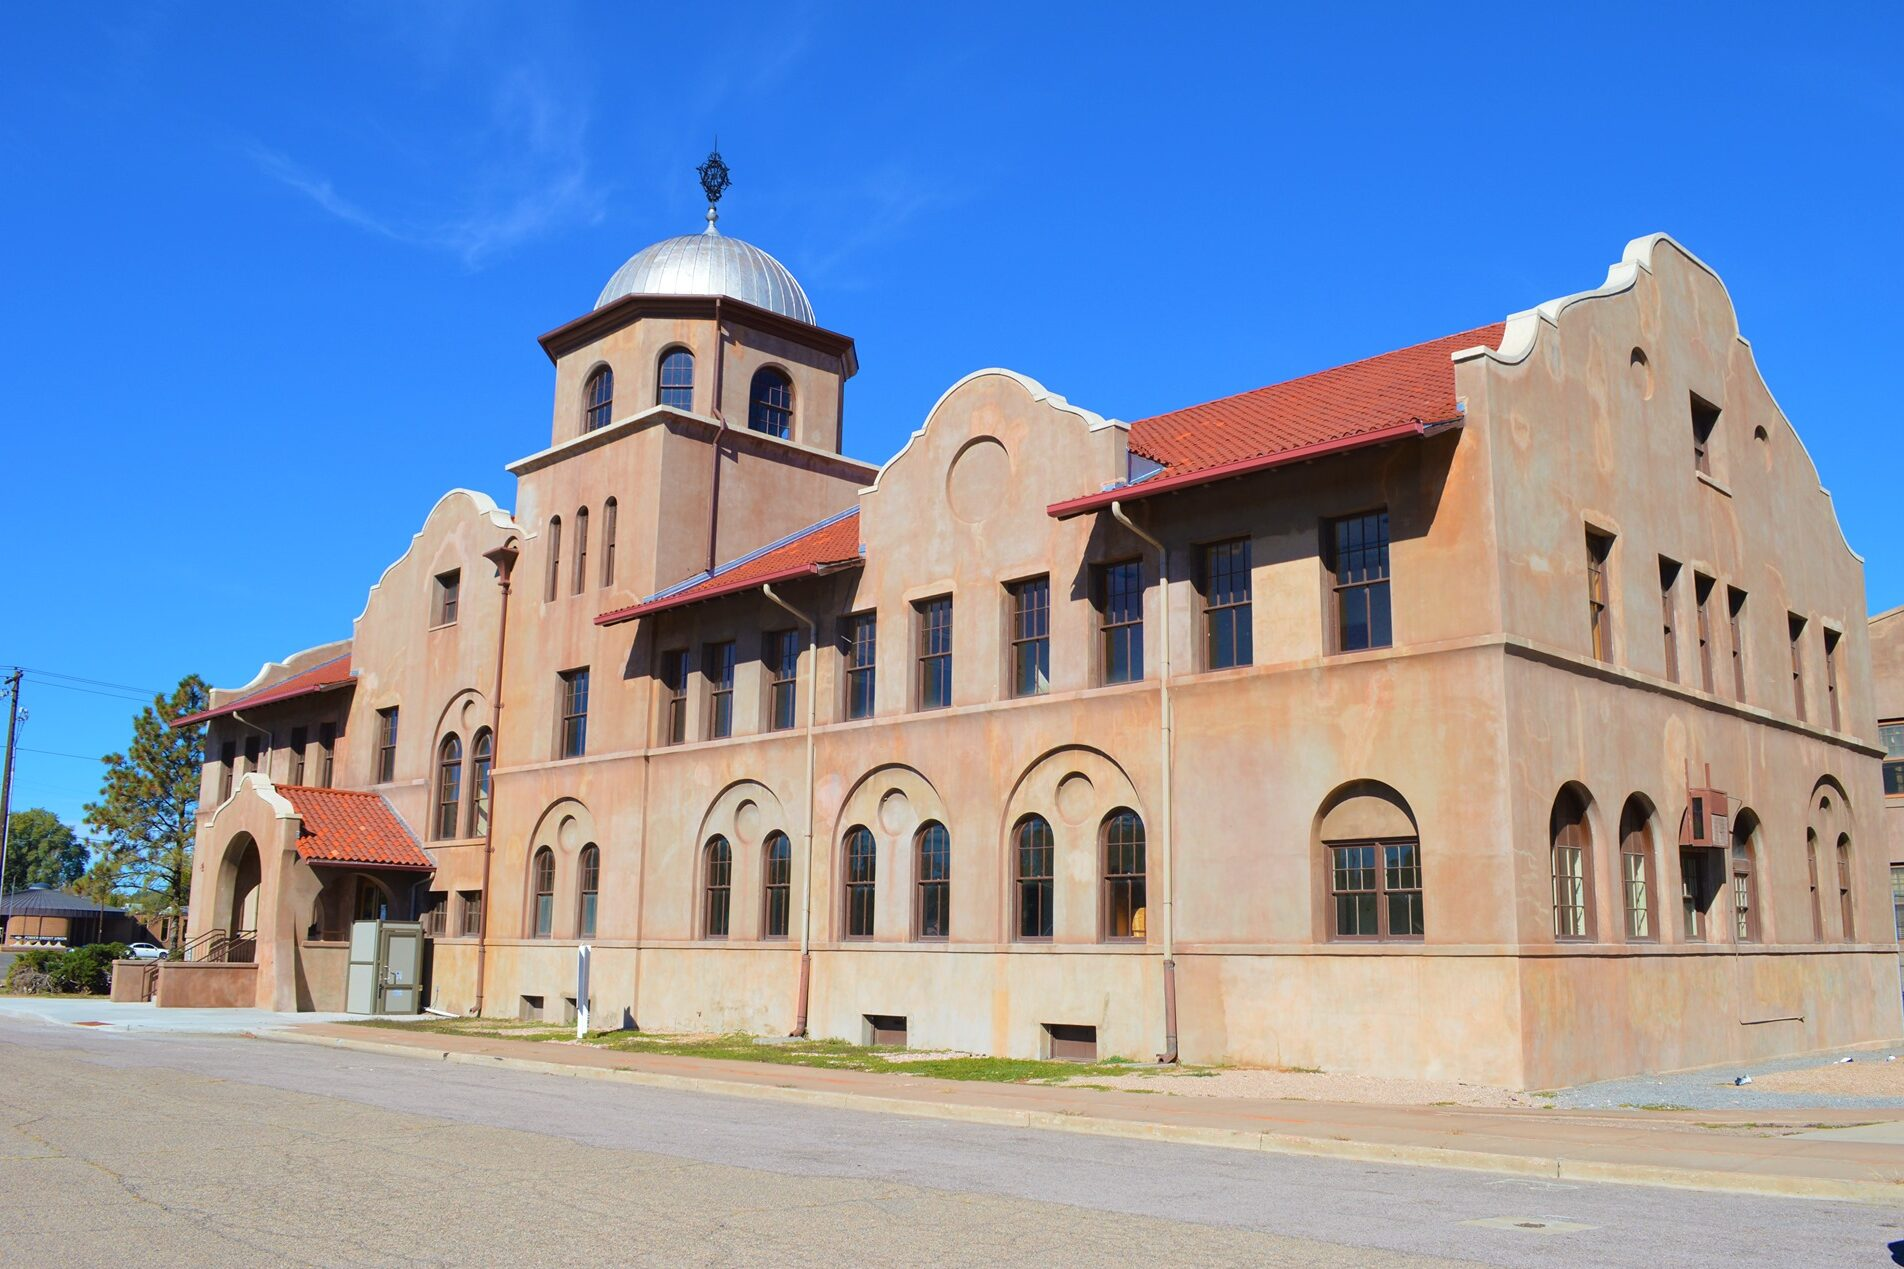 The Mission Revival style office building was once part of the headquarters of the Colorado Fuel and Iron Company. It's part of the company's former administrative complex in south Pueblo recently designated as a National Historic Landmark.